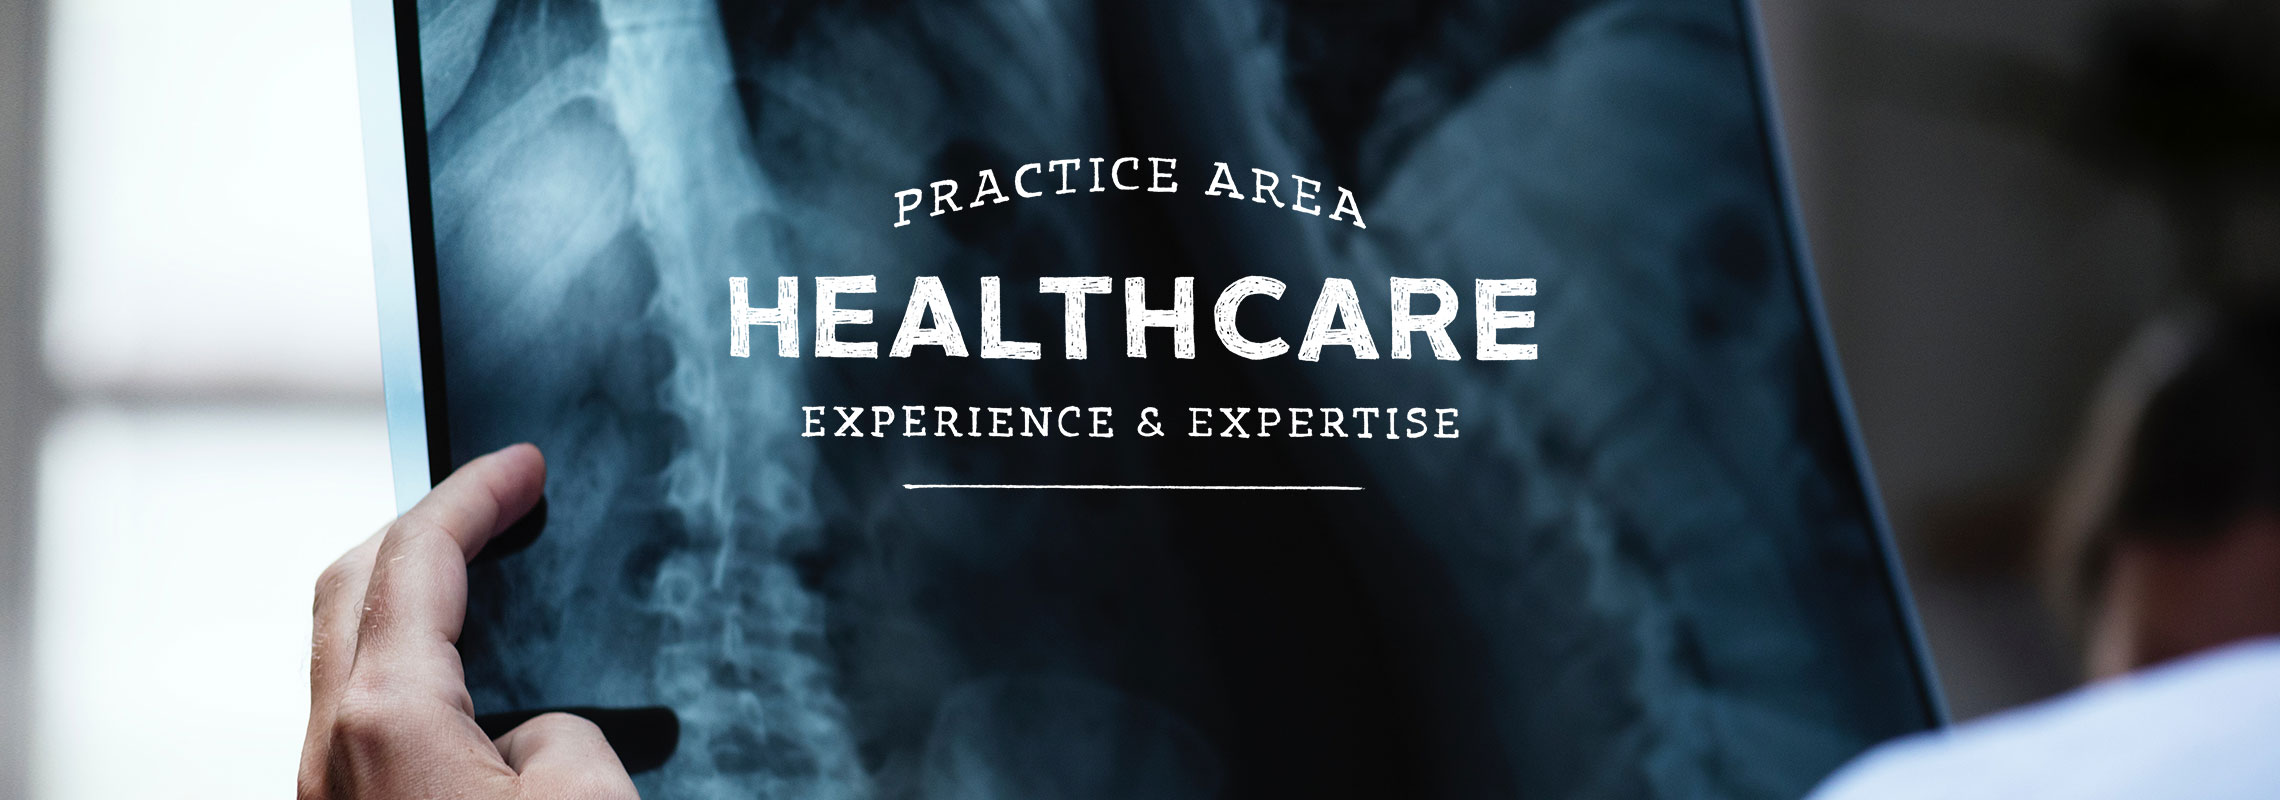 practice area healthcare experience and expertise